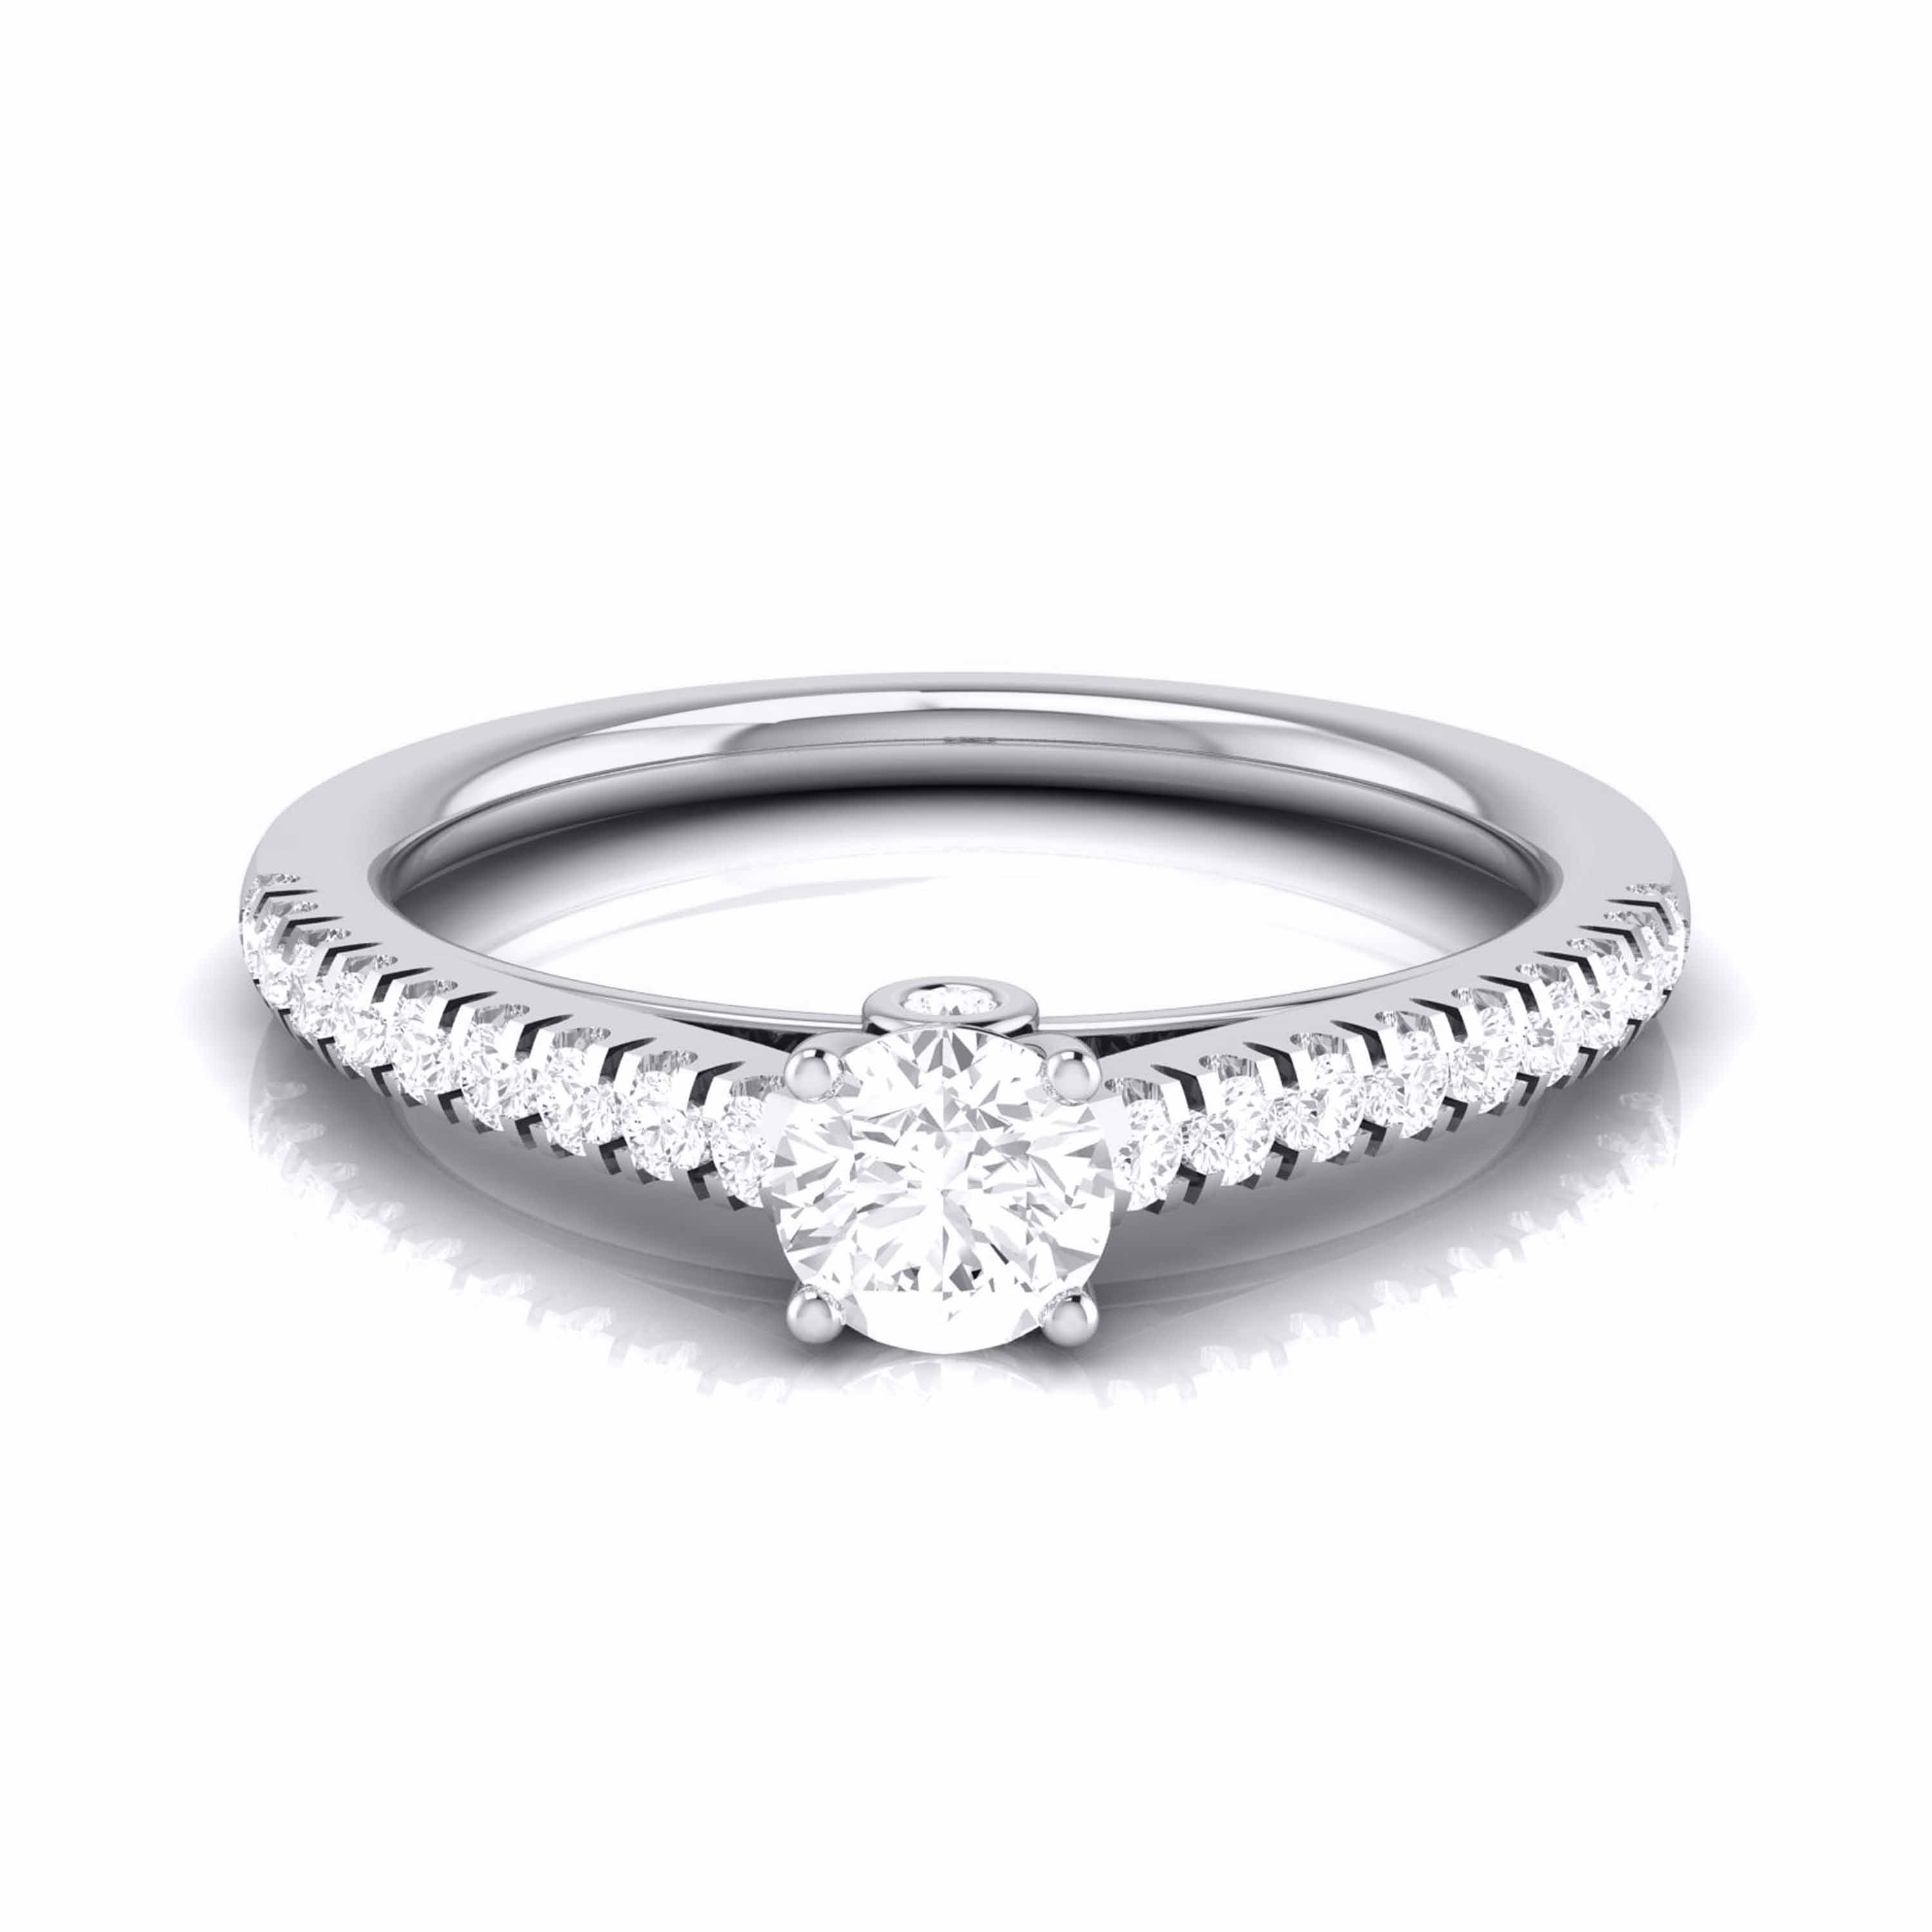 Platinum Diamond Halo Solitaire Engagement Ring JL PT R-55